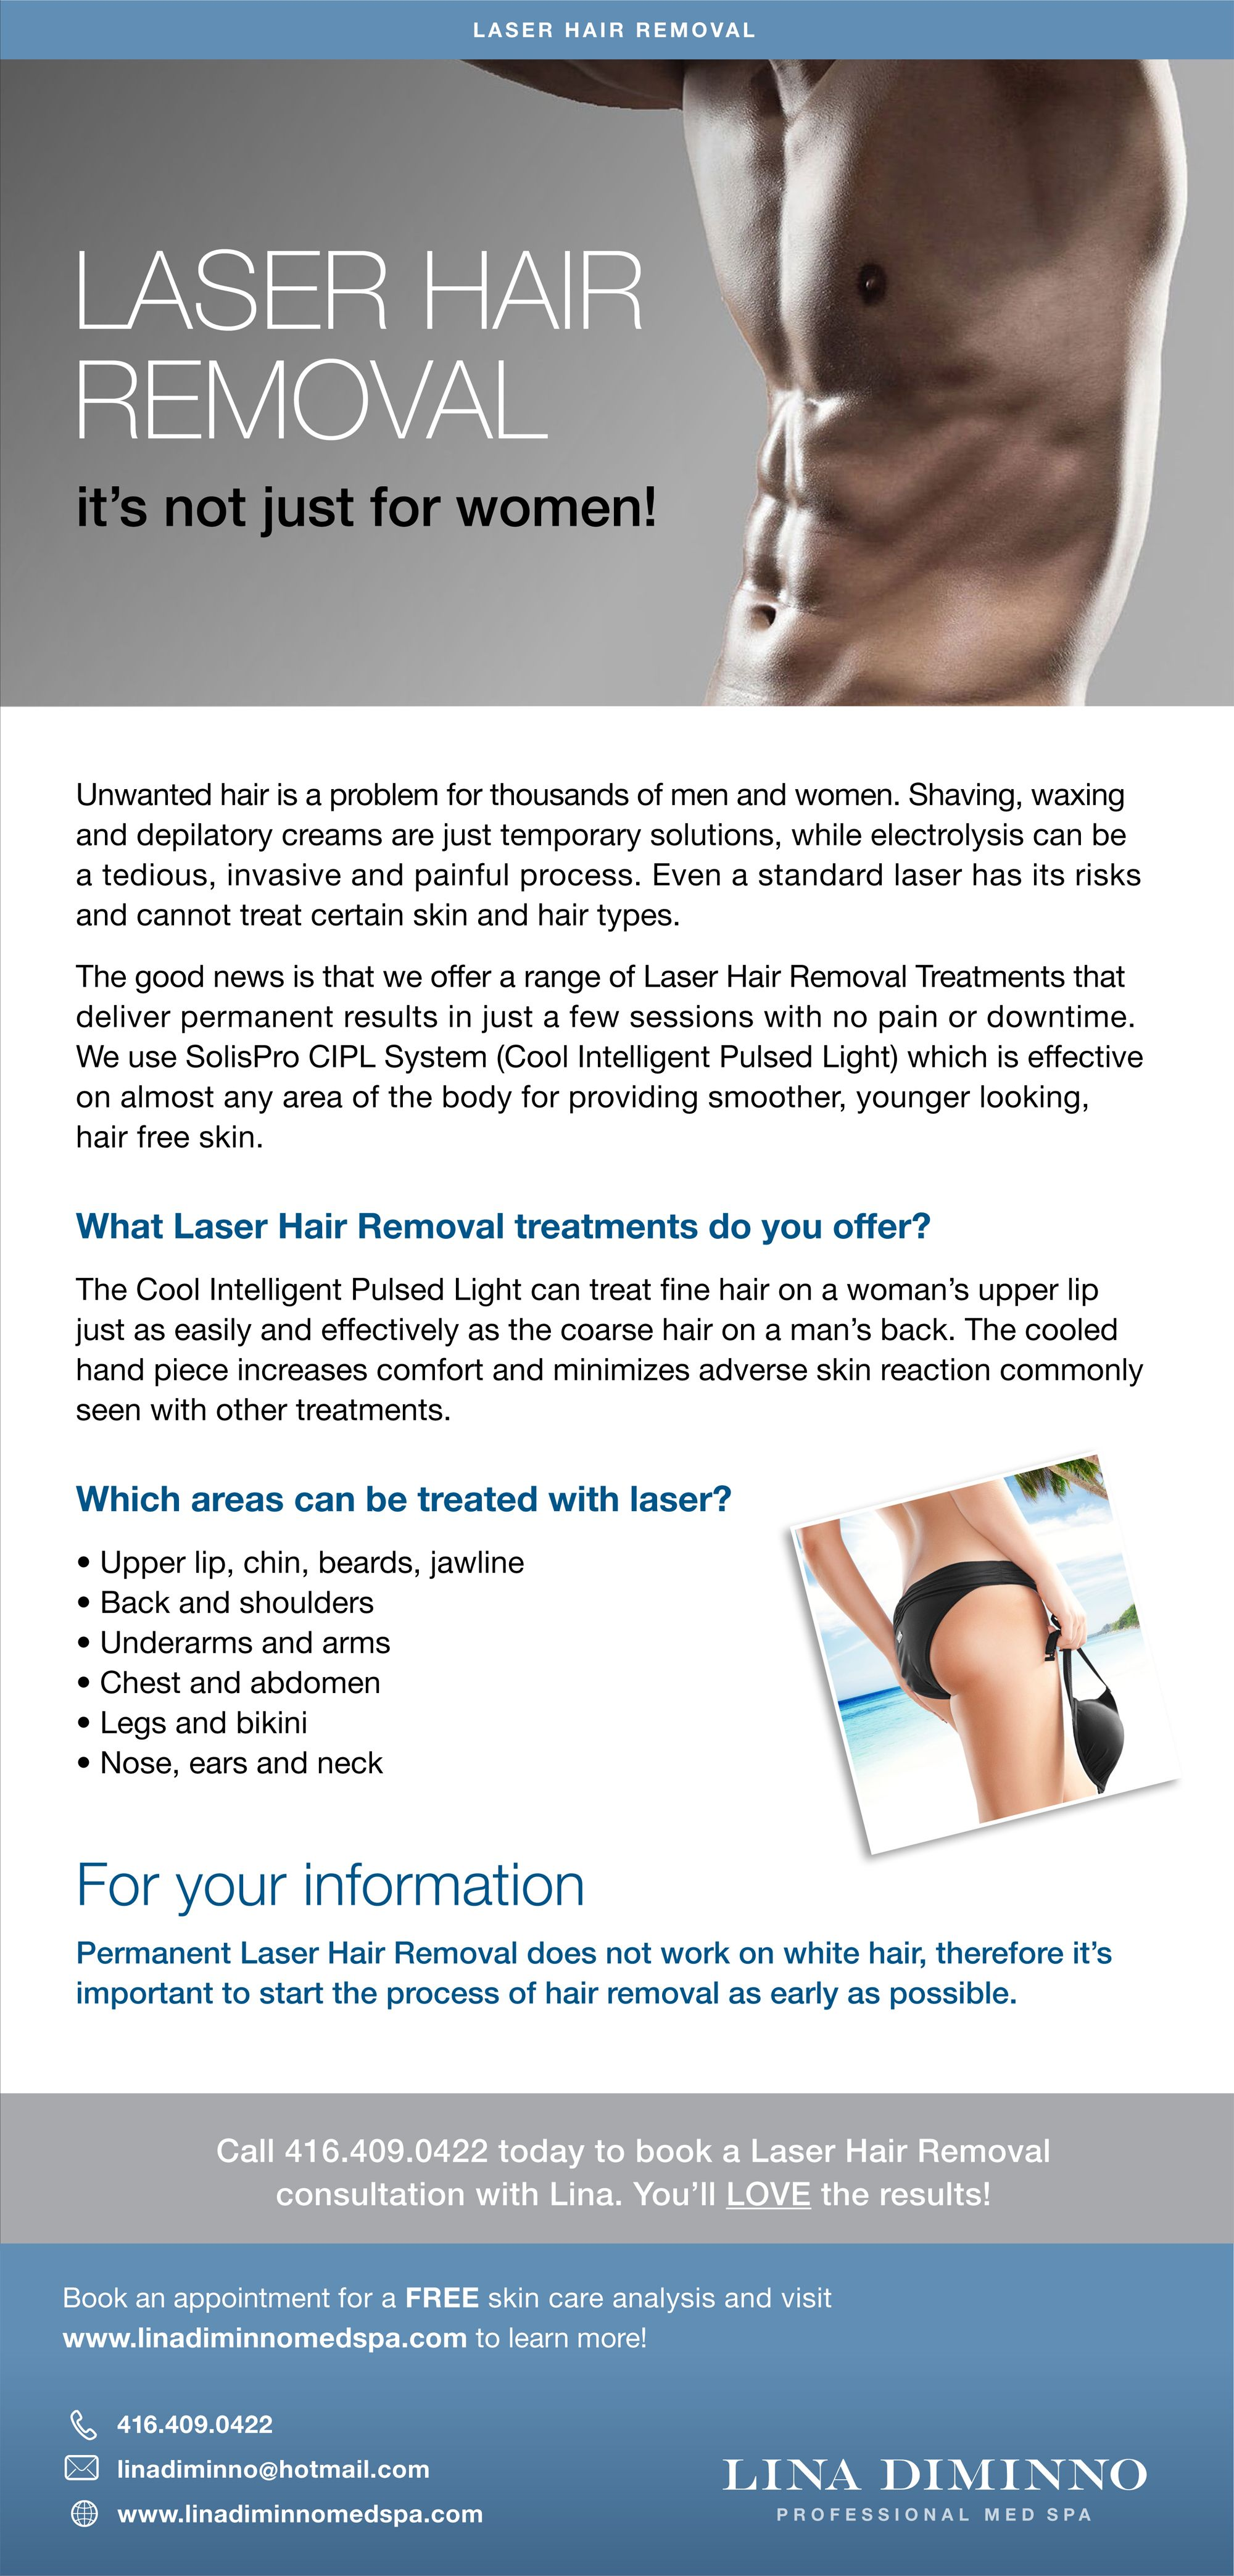 Lina Diminno Med Spa Offers A Range Of Ipl Laser Hair Removal And